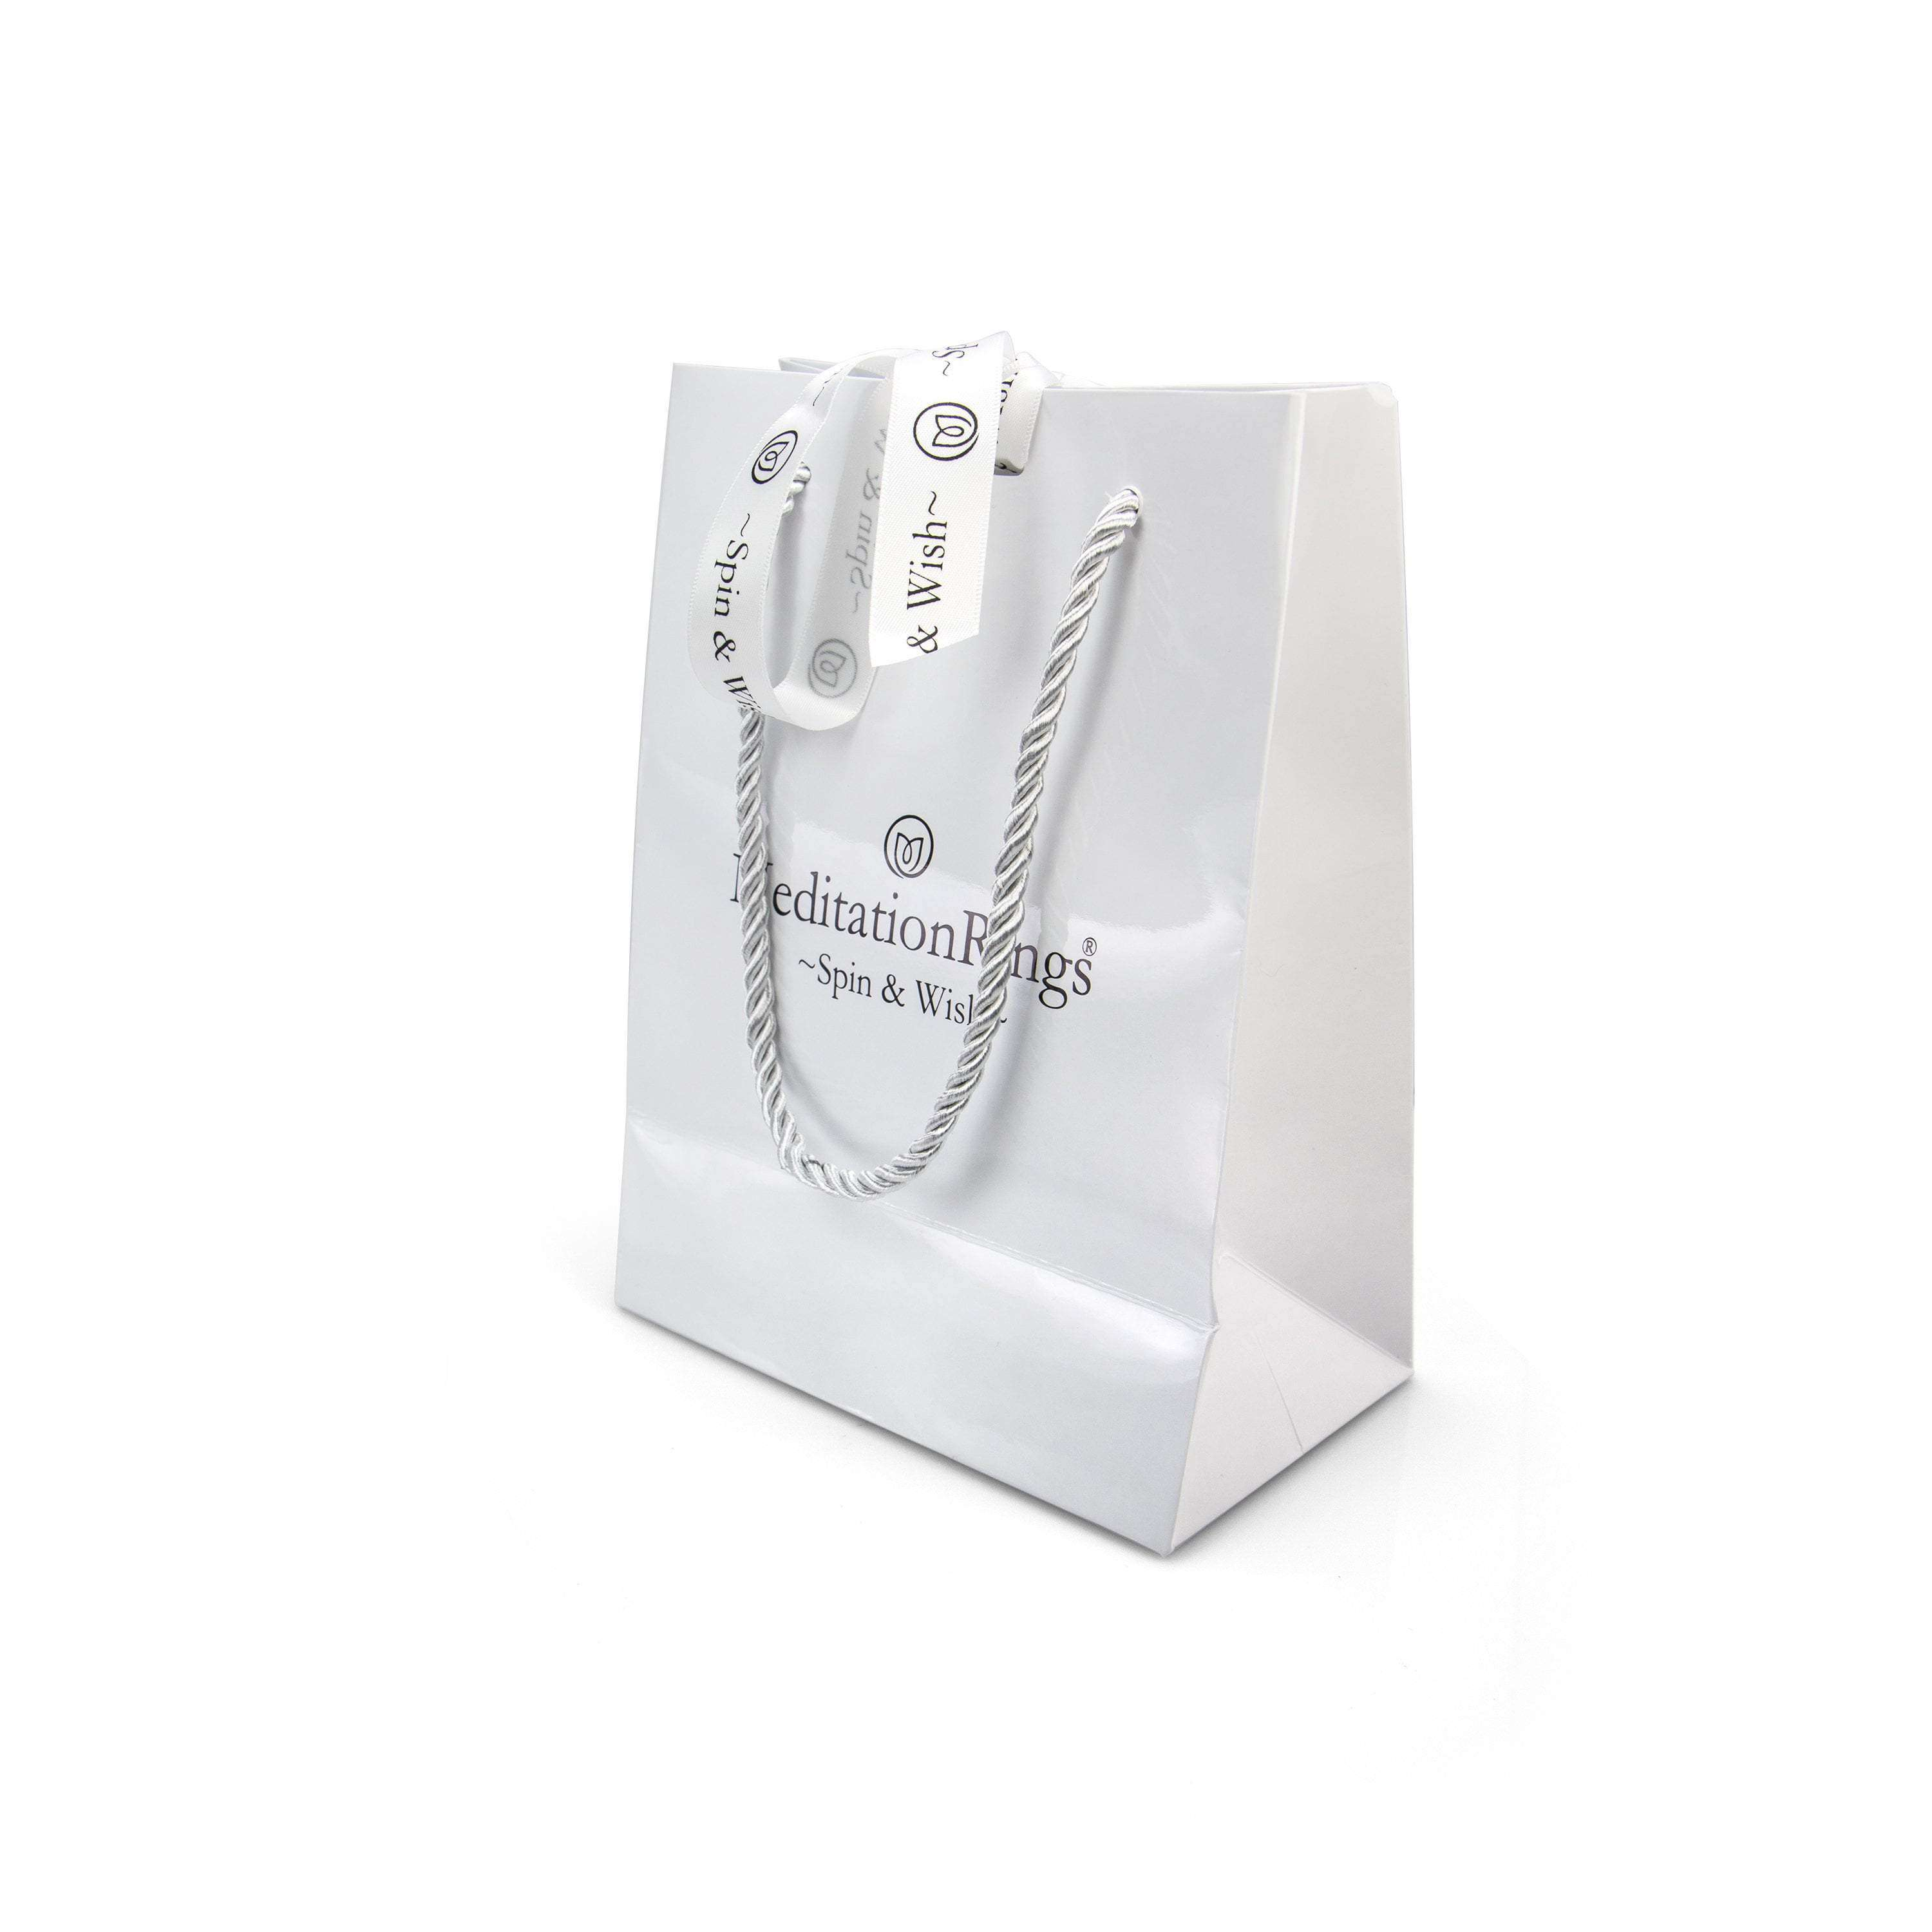 MeditationRings Luxury Gift Wrapping